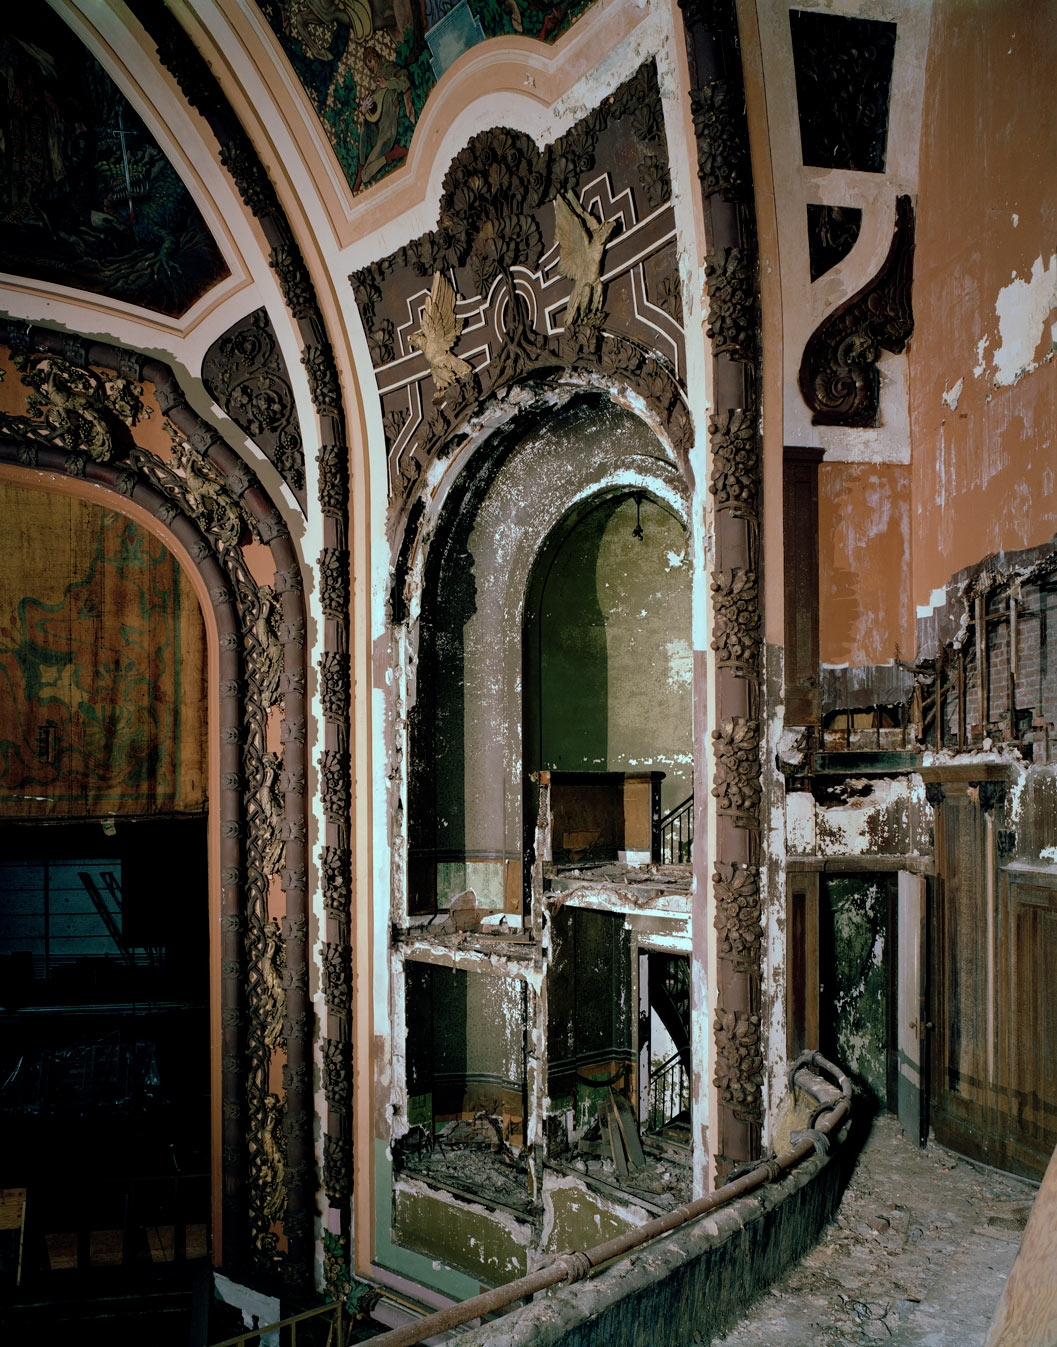 Interior of the New Amsterdam Theatre, before renovations began. The theater was in the worst shape of all the renovated theaters. Image: Whitney Cox.